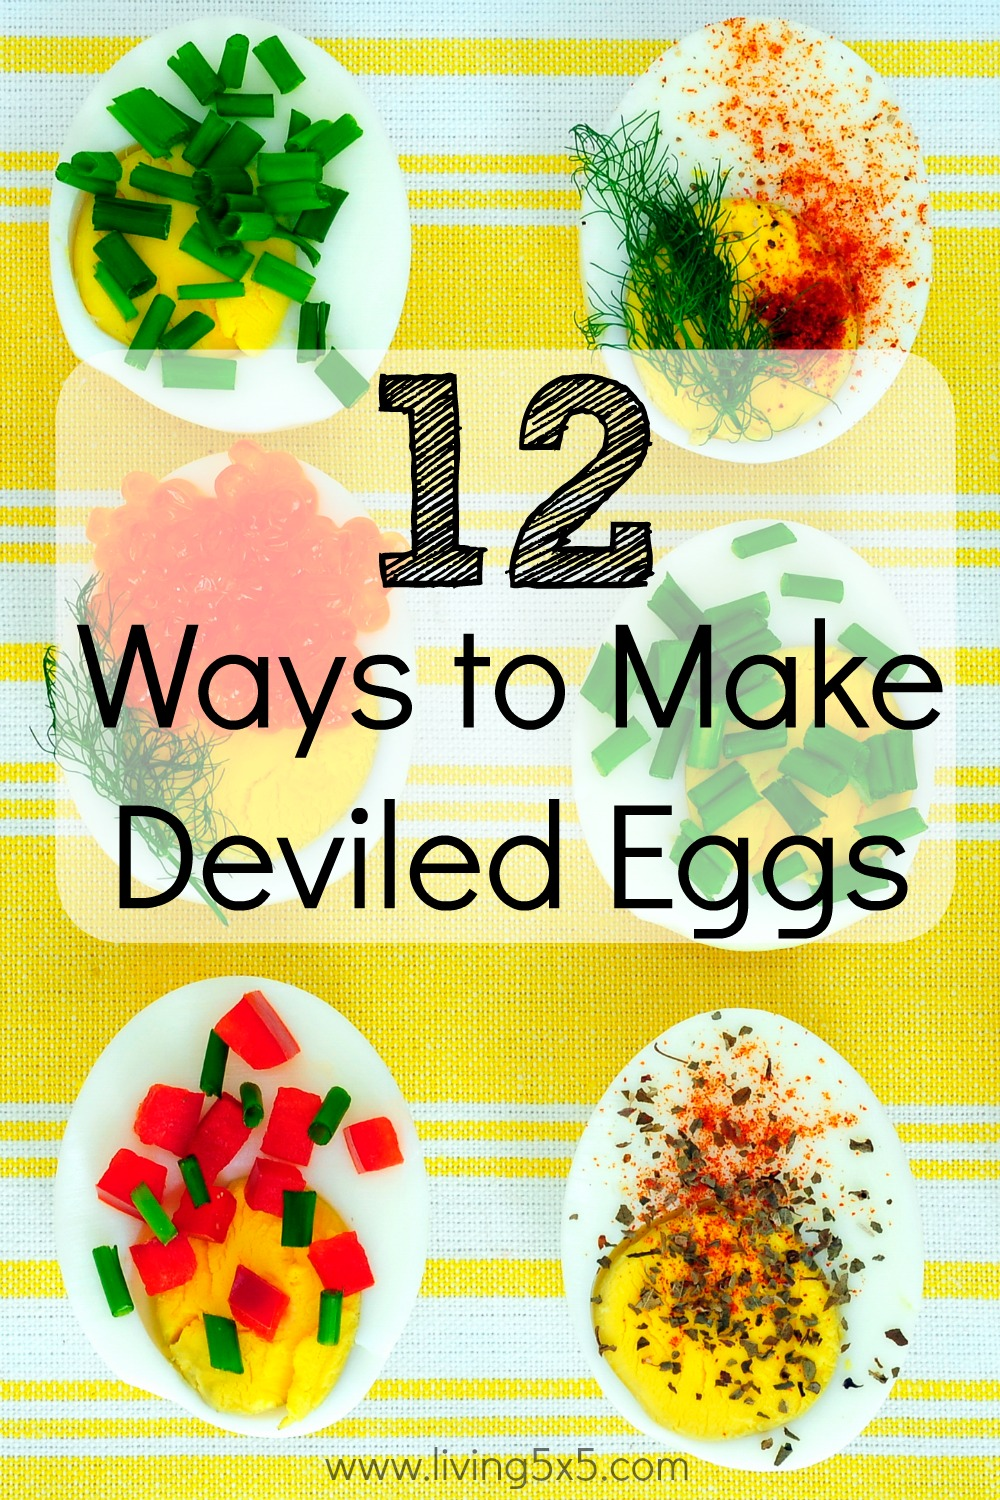 12 Ways to Make Deviled Eggs. Get these yummy recipes you can whip up in less than an hour!